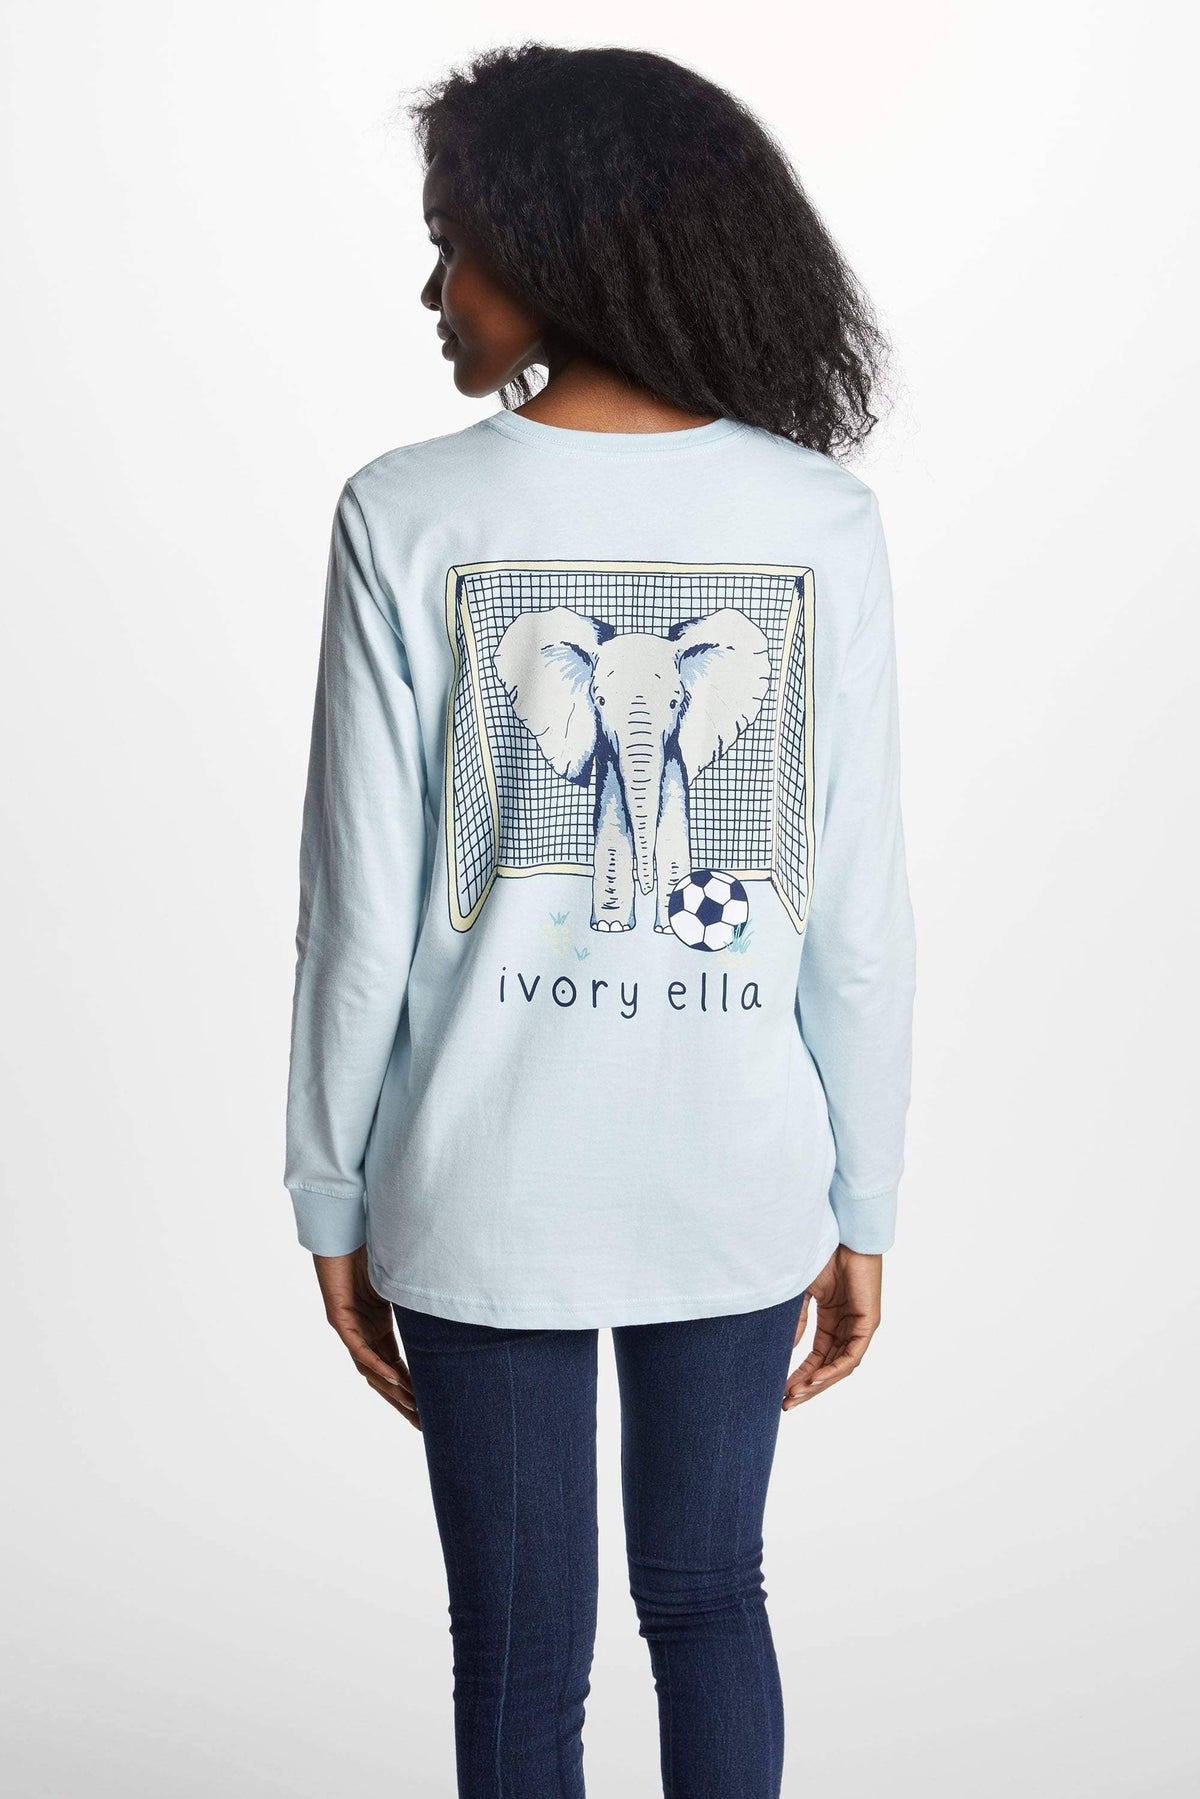 Ivory Ella Women's Long Sleeve Shirts XXS Ella Fit New Soccer Tee